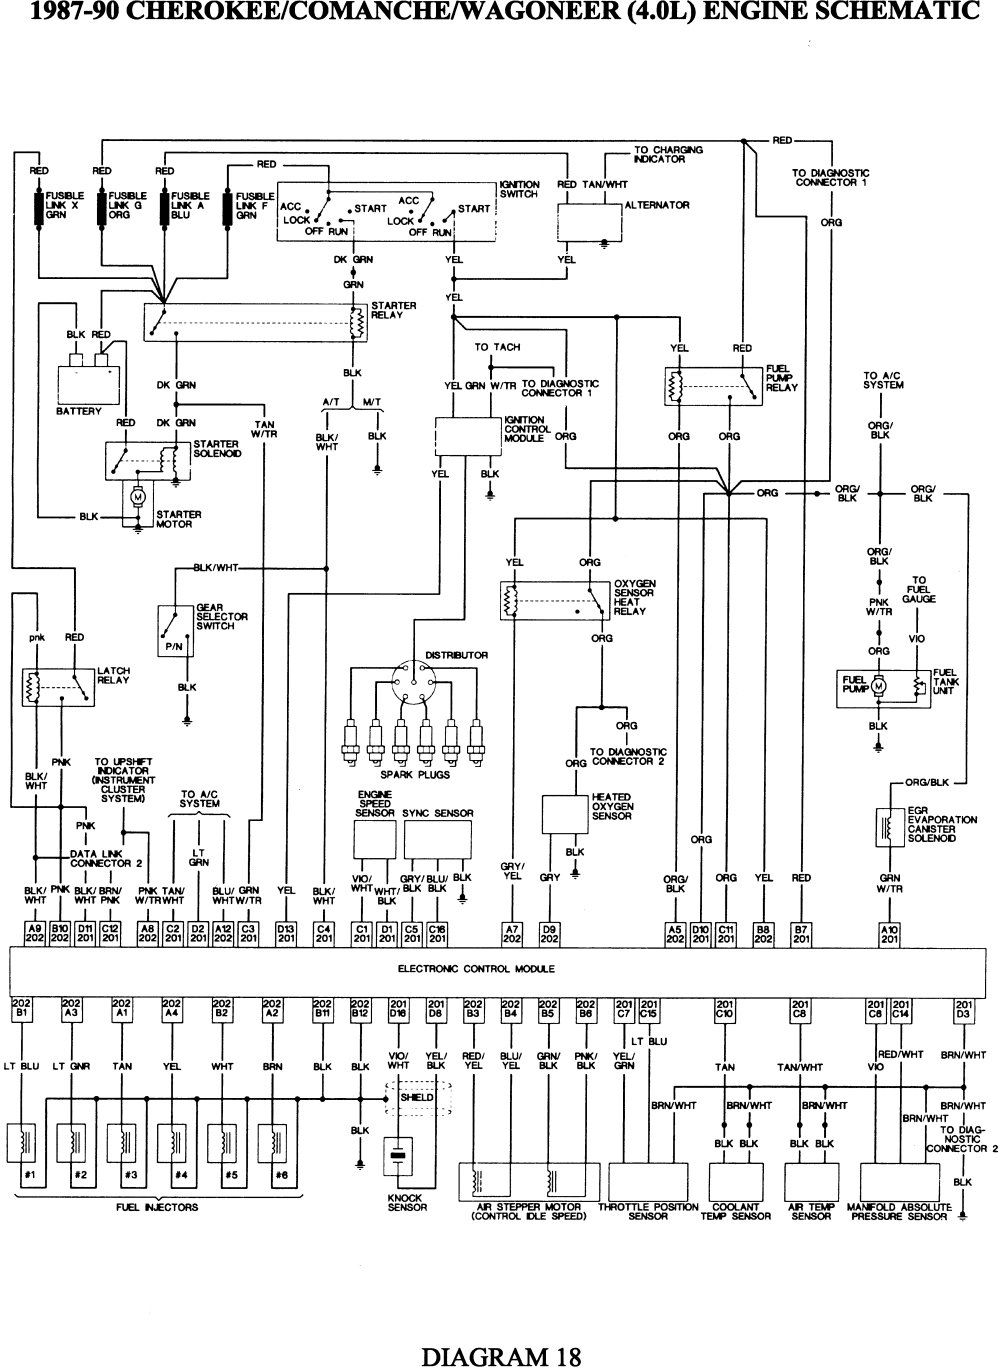 94 Grand Cherokee Transmission Diagram - Do you want to ... on